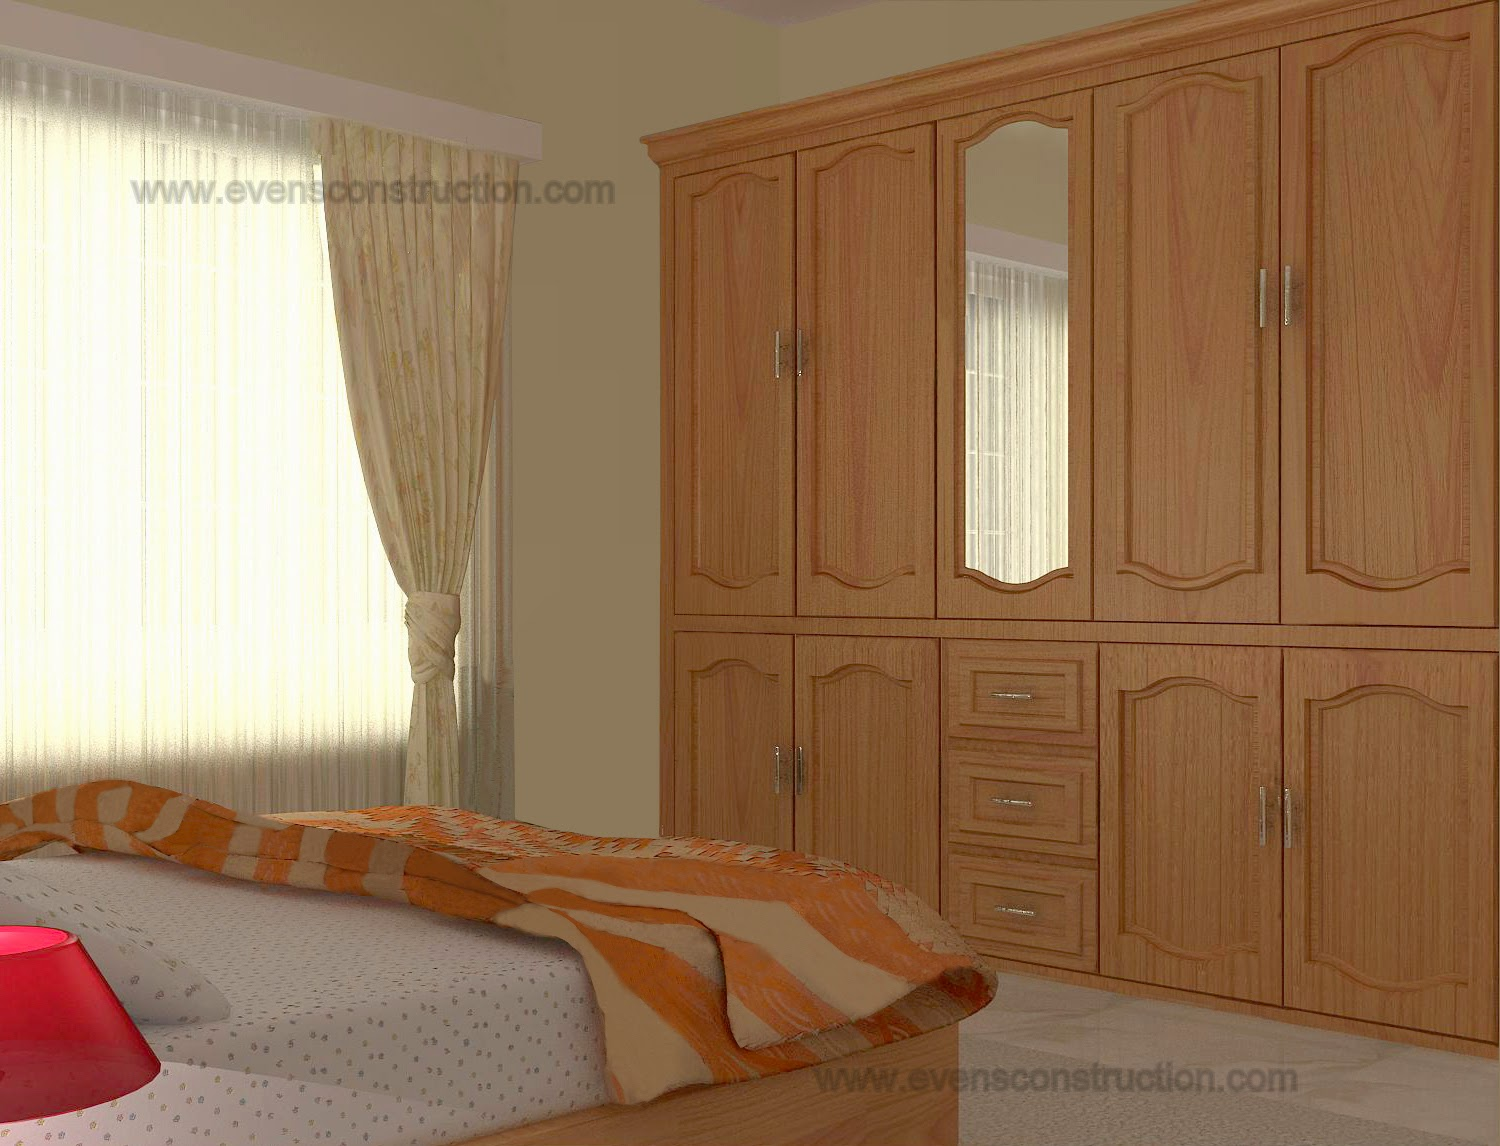 Evens construction pvt ltd kerala bedroom interior design for Wooden bed interior design